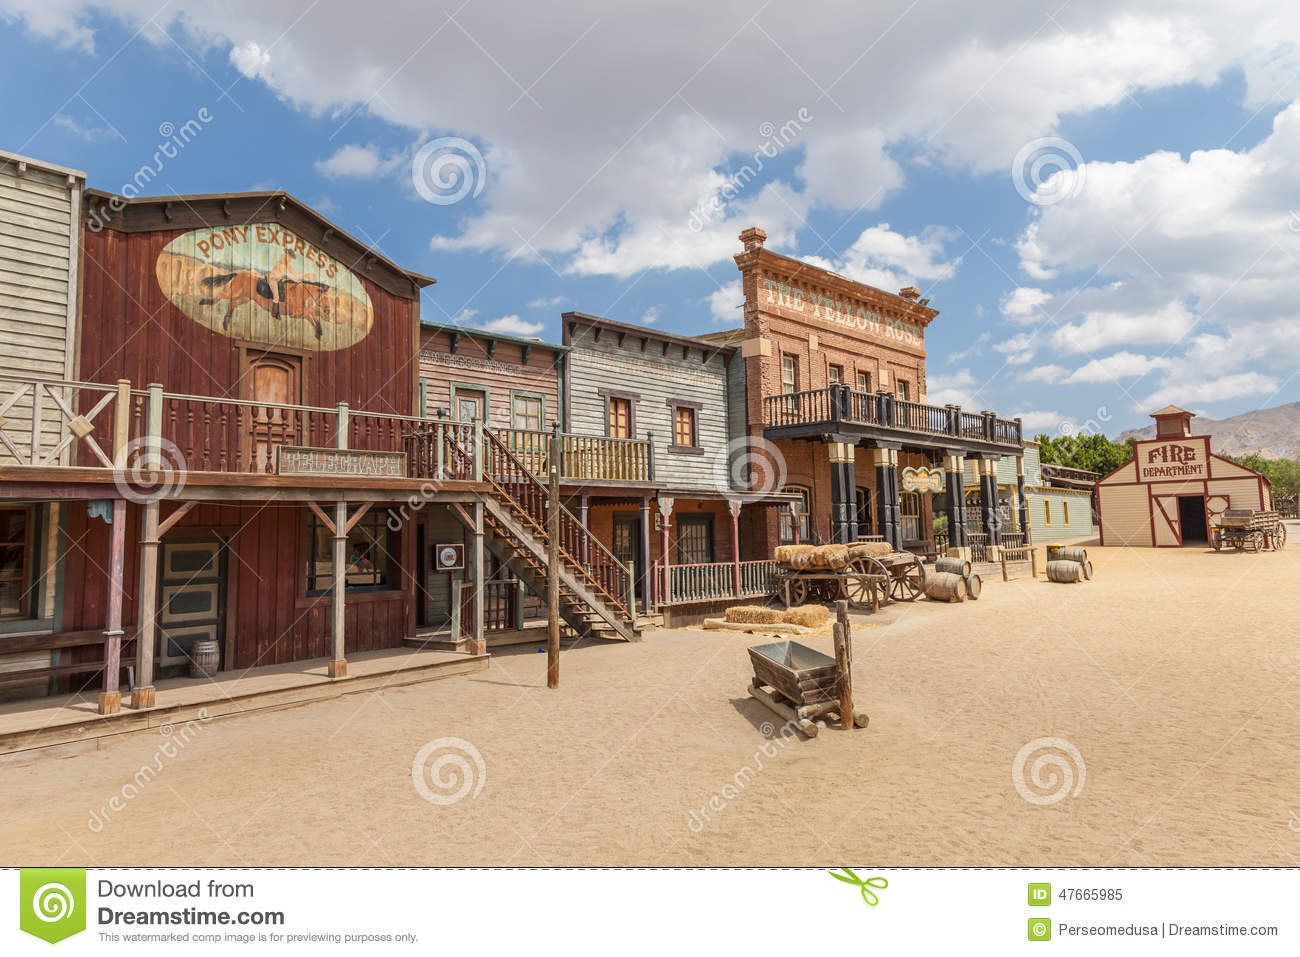 Far West Stock Photo - Image: 47665985